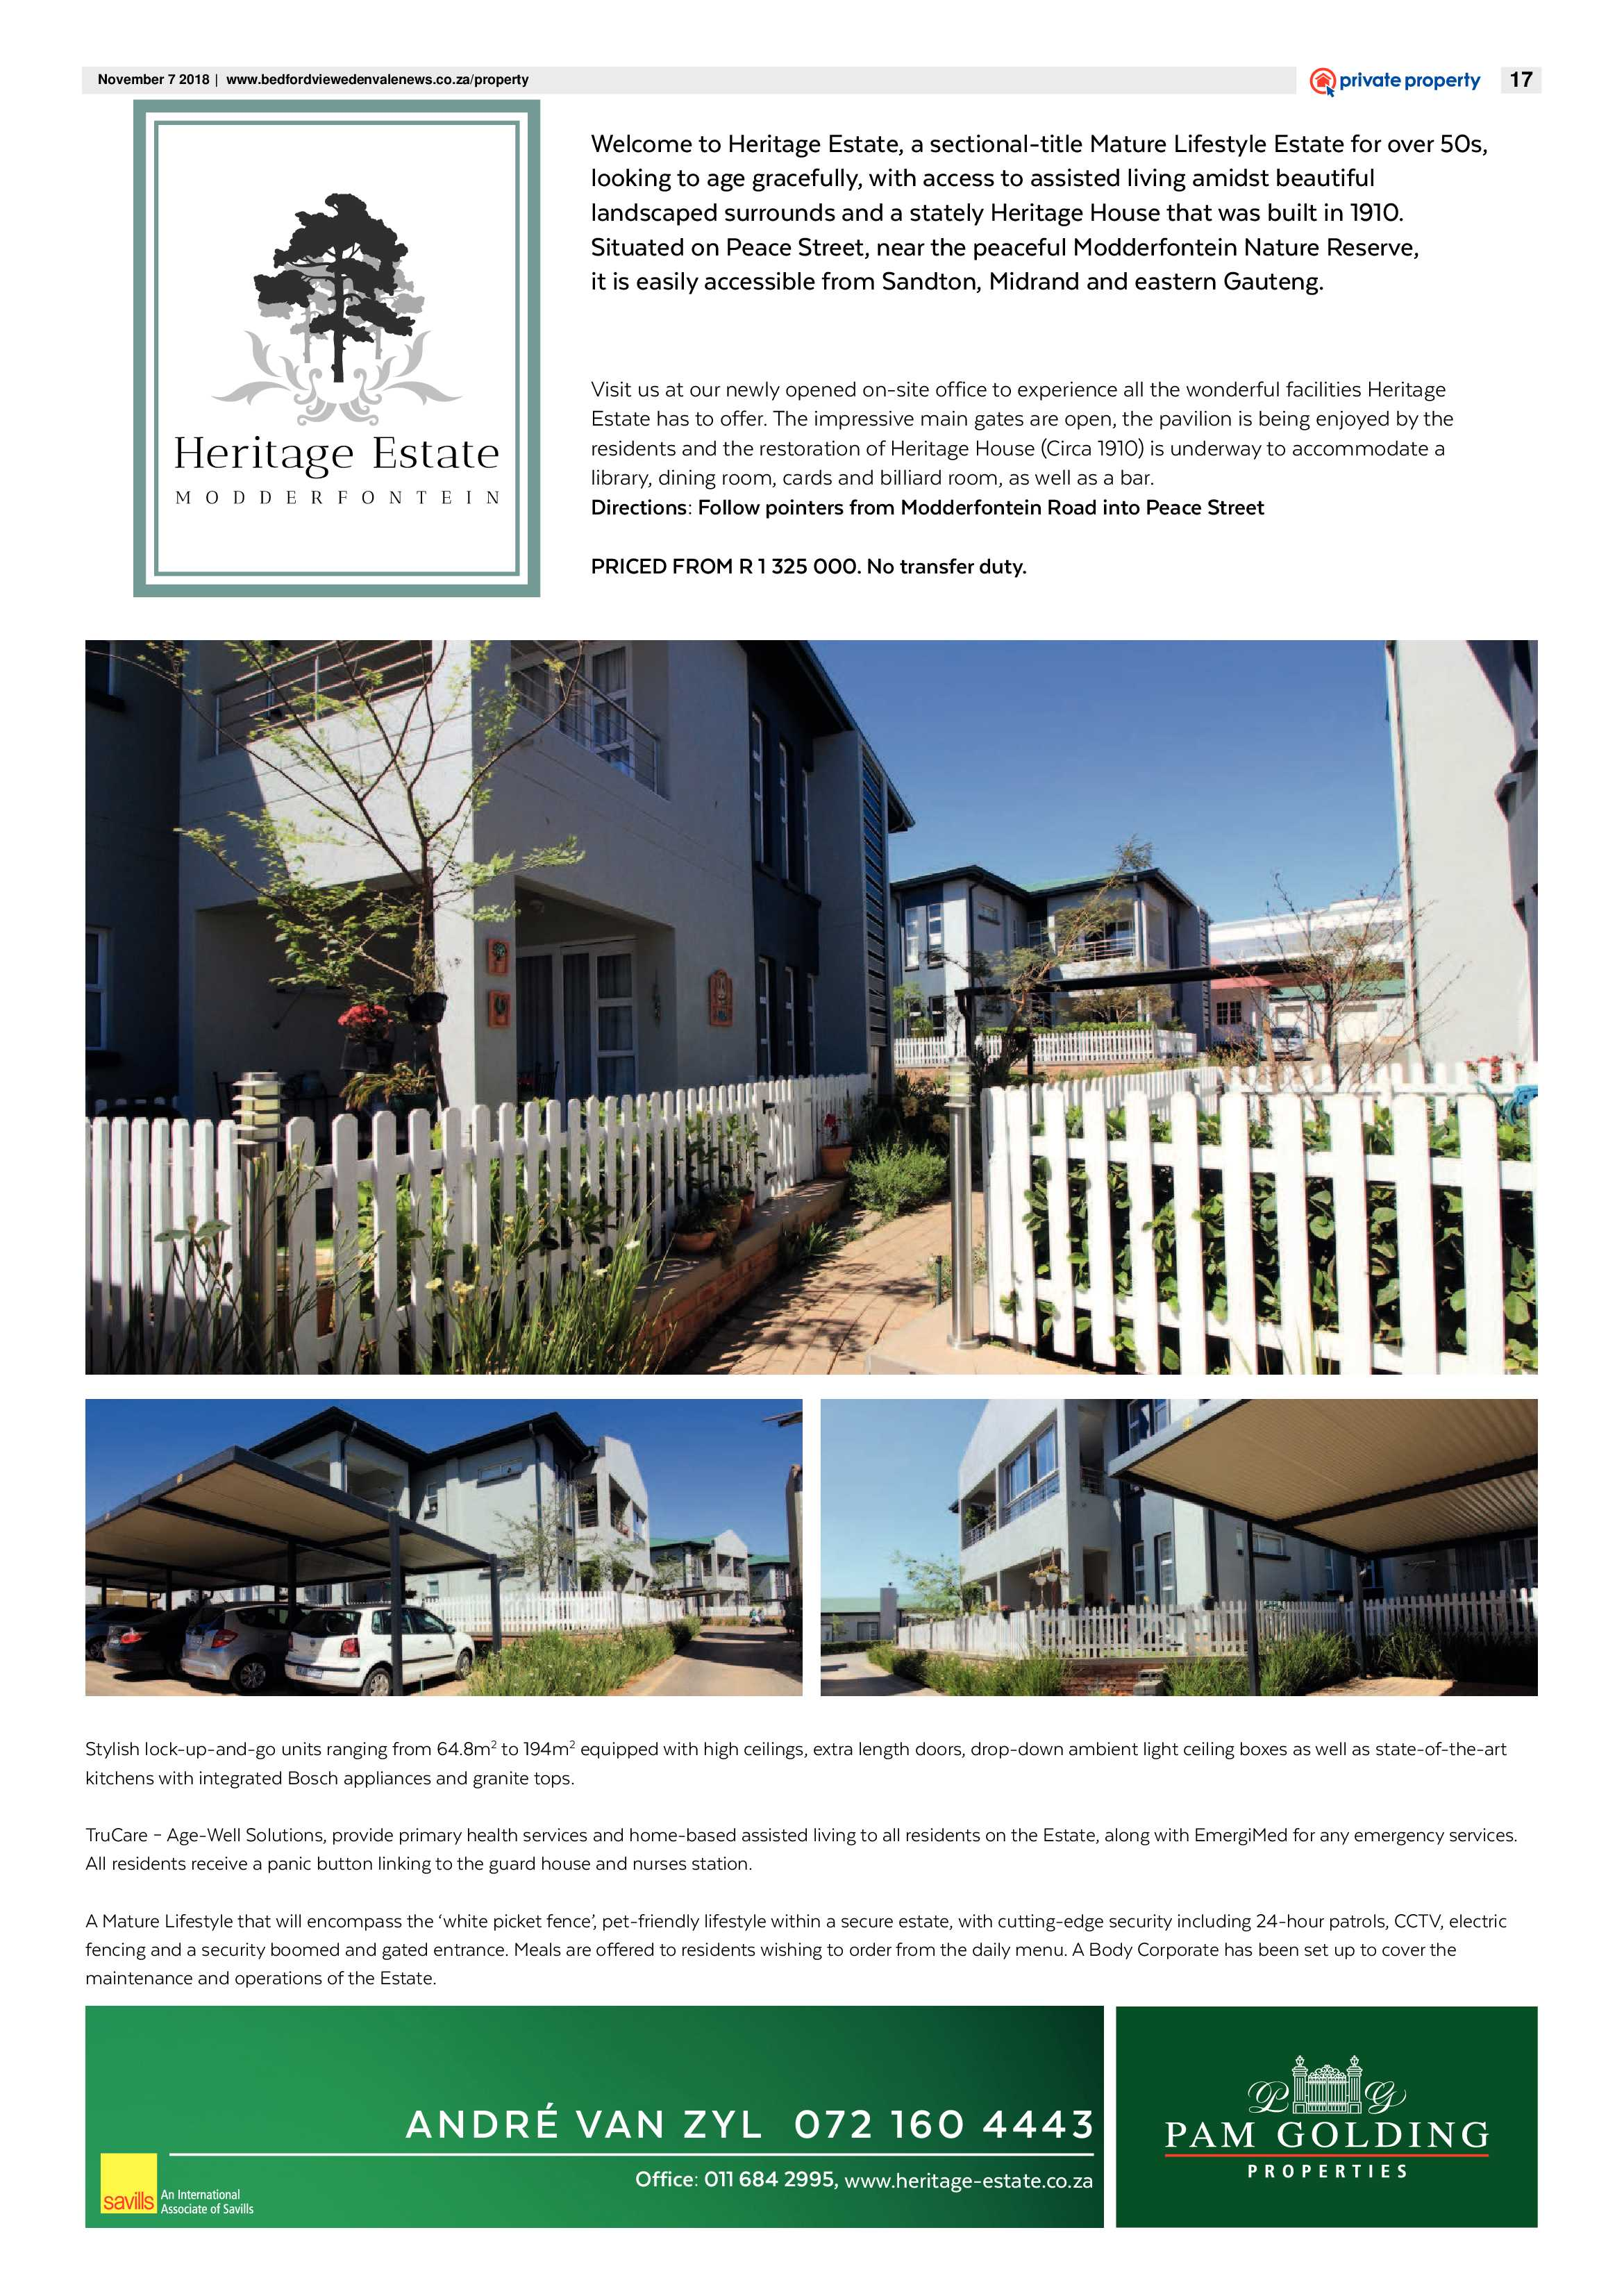 bedfordview-edenvale-news-07-november-2018-epapers-page-17